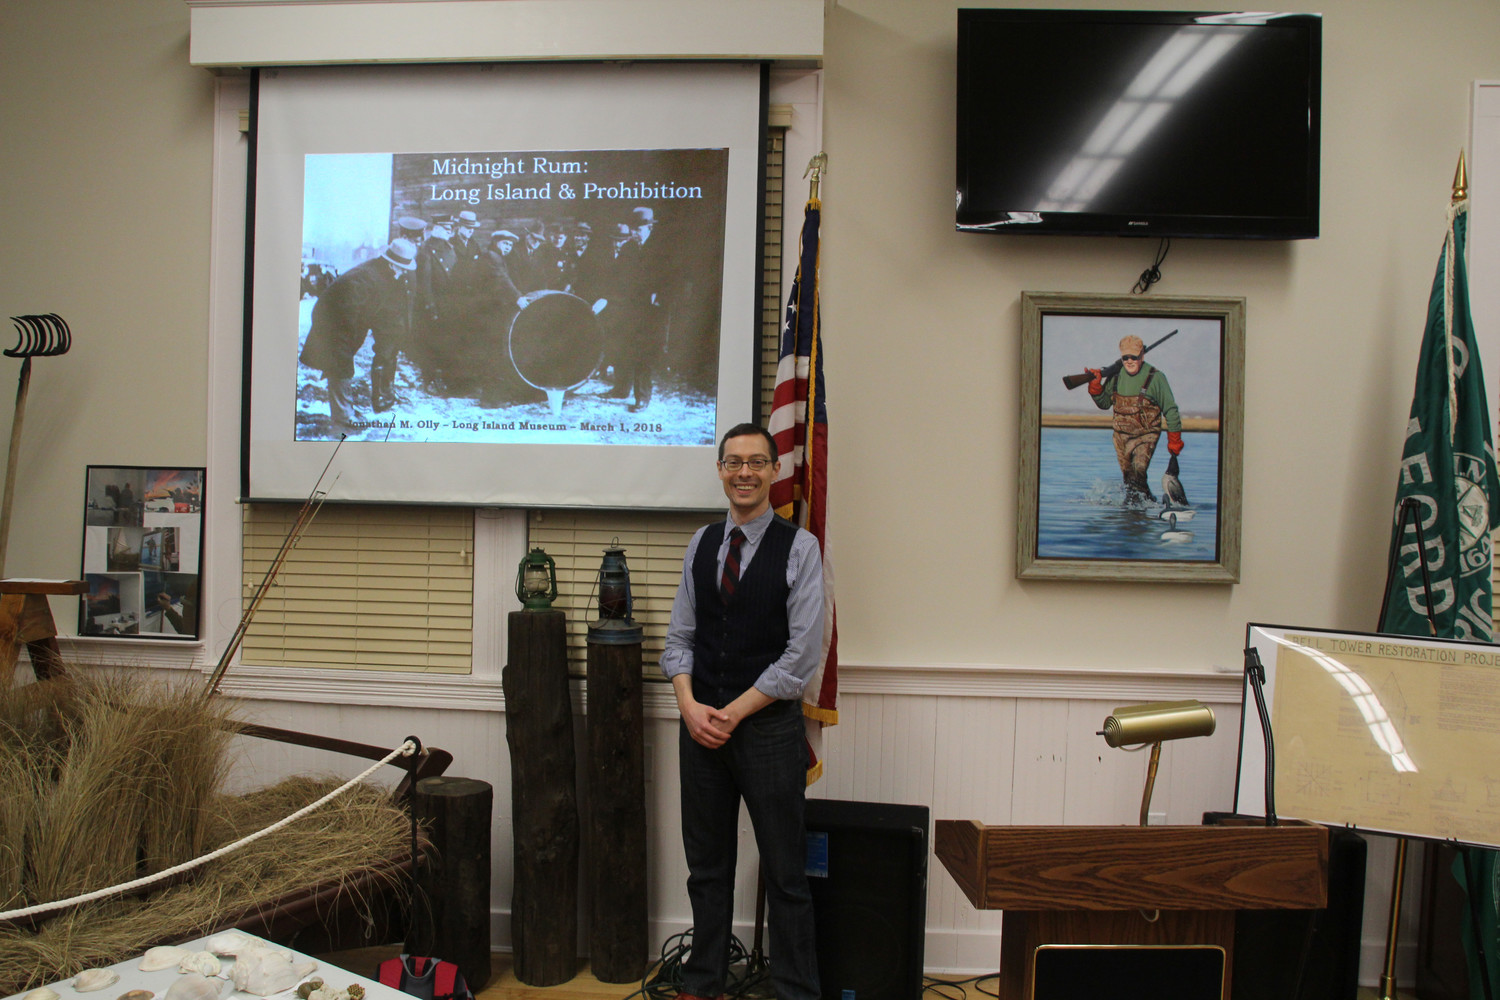 Jonathan Olly, PH.D (from Port Jefferson, N.Y.) Asst. Curator Long Island Museum spoke at the Seaford Historical Society.